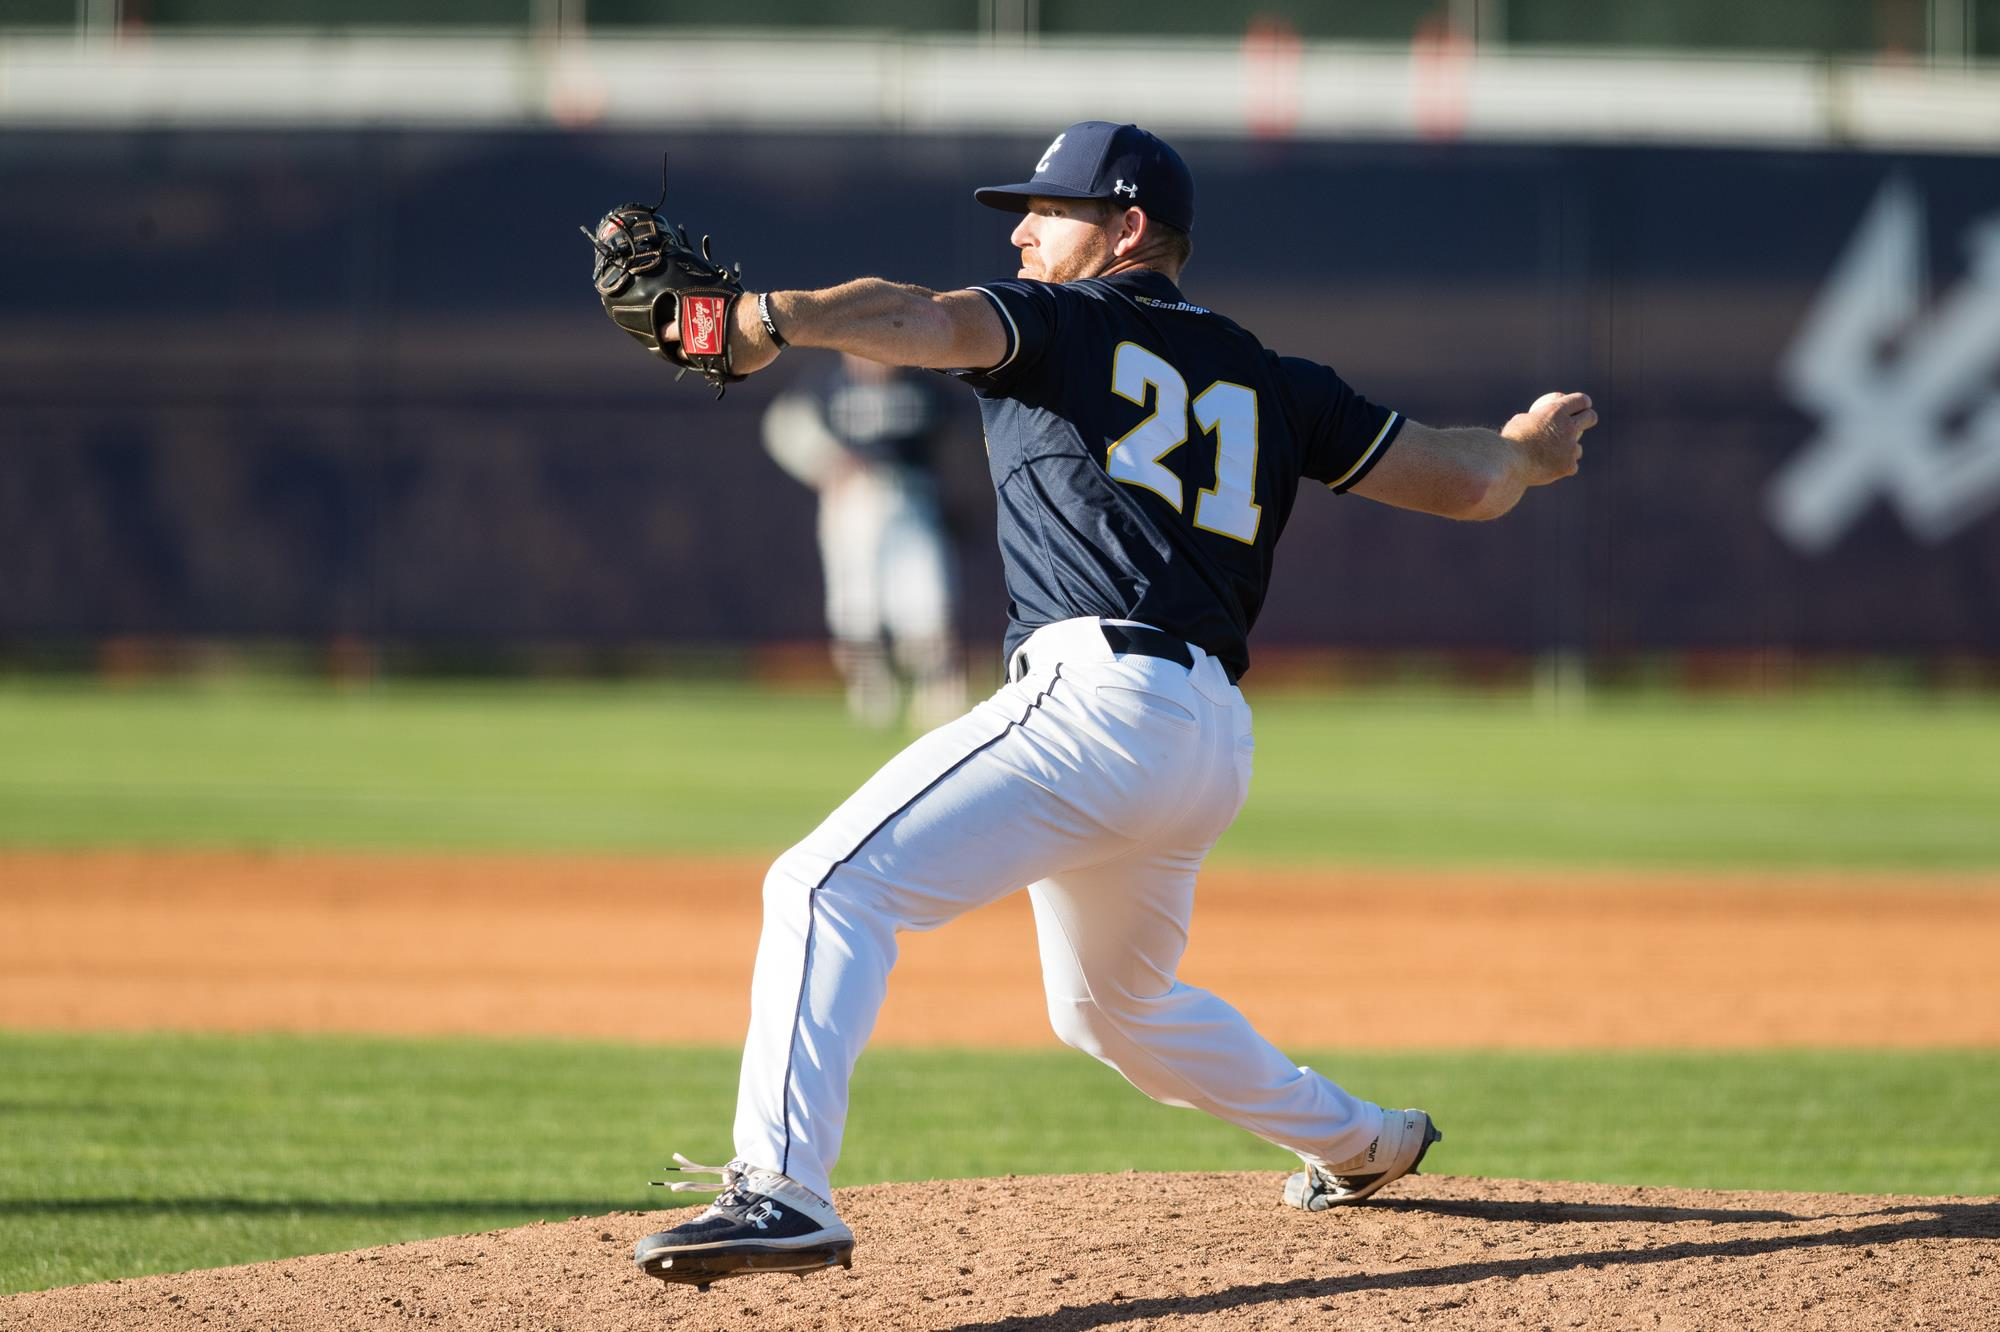 Mark Quinby 2020 Baseball University Of California San Diego Images, Photos, Reviews